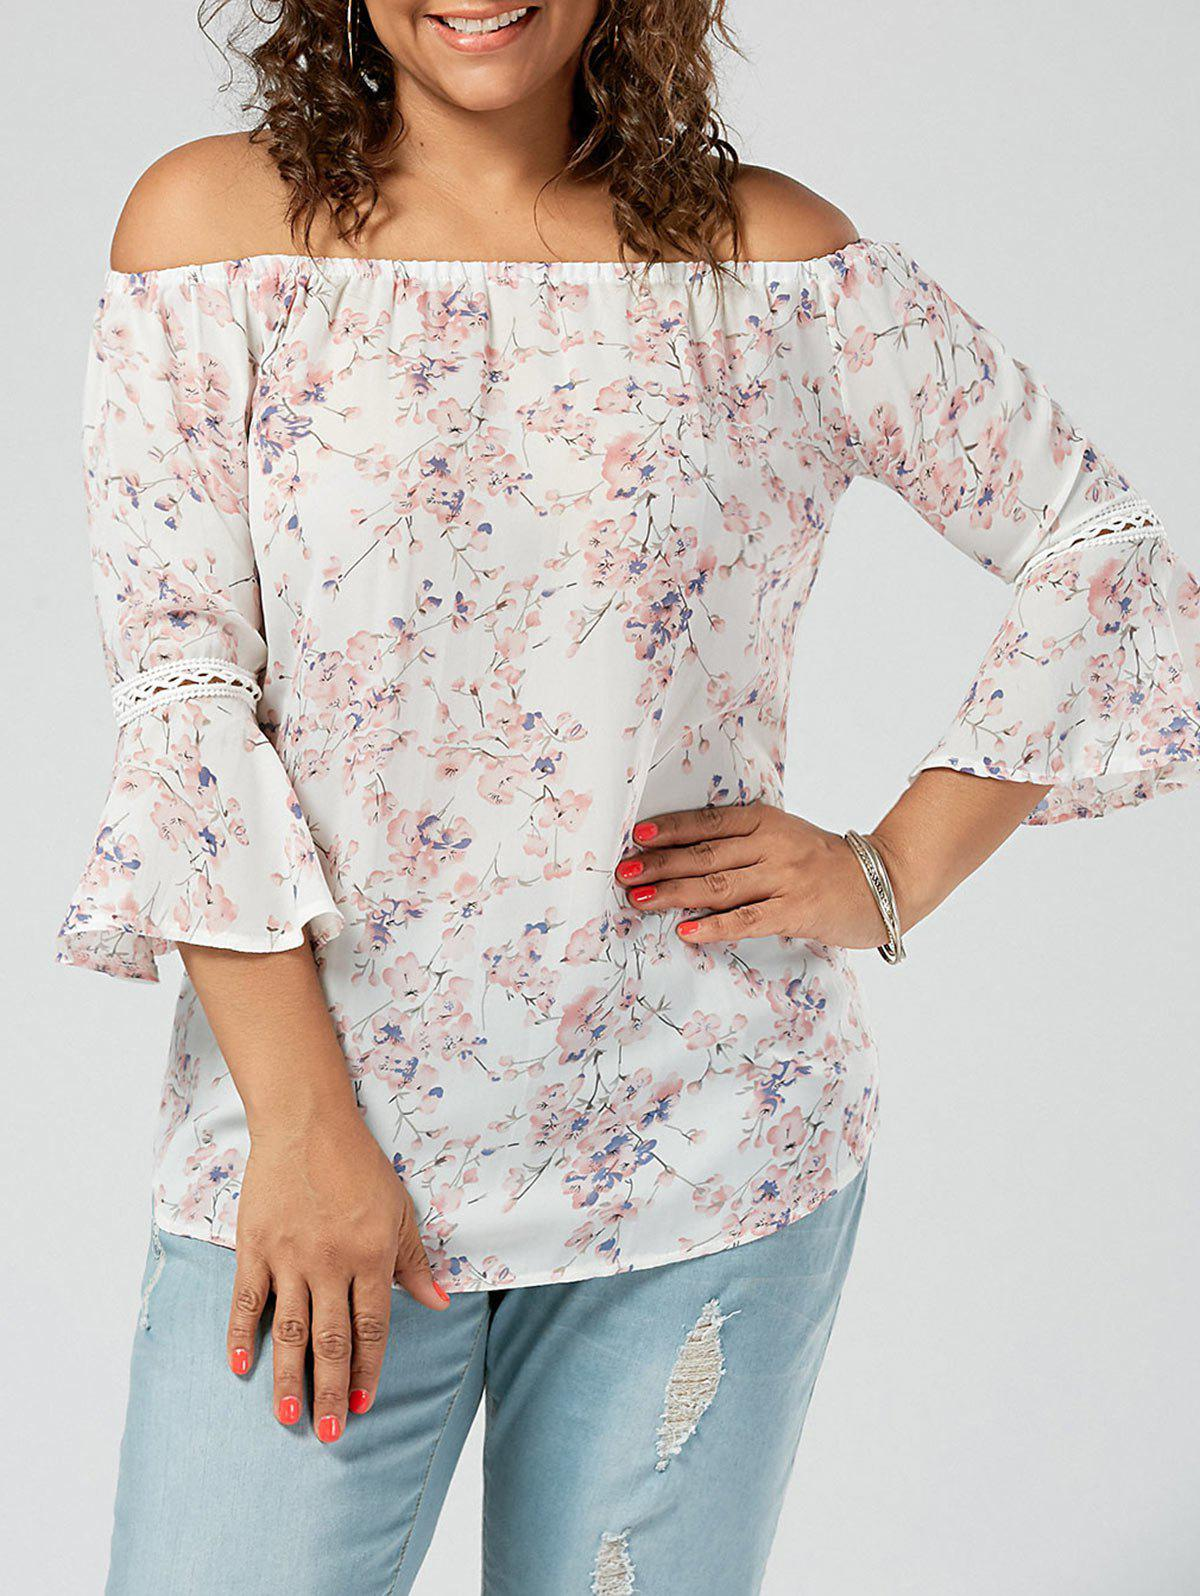 Chiffon Floral Off The Shoulde Plus Size BlouseWOMEN<br><br>Size: 2XL; Color: PINK; Material: Cotton Blends,Polyester; Fabric Type: Chiffon; Shirt Length: Regular; Sleeve Length: Three Quarter; Collar: Off The Shoulder; Style: Fashion; Season: Spring,Summer; Sleeve Type: Flare Sleeve; Embellishment: Lace; Pattern Type: Floral; Weight: 0.1800kg; Package Contents: 1 x Top;